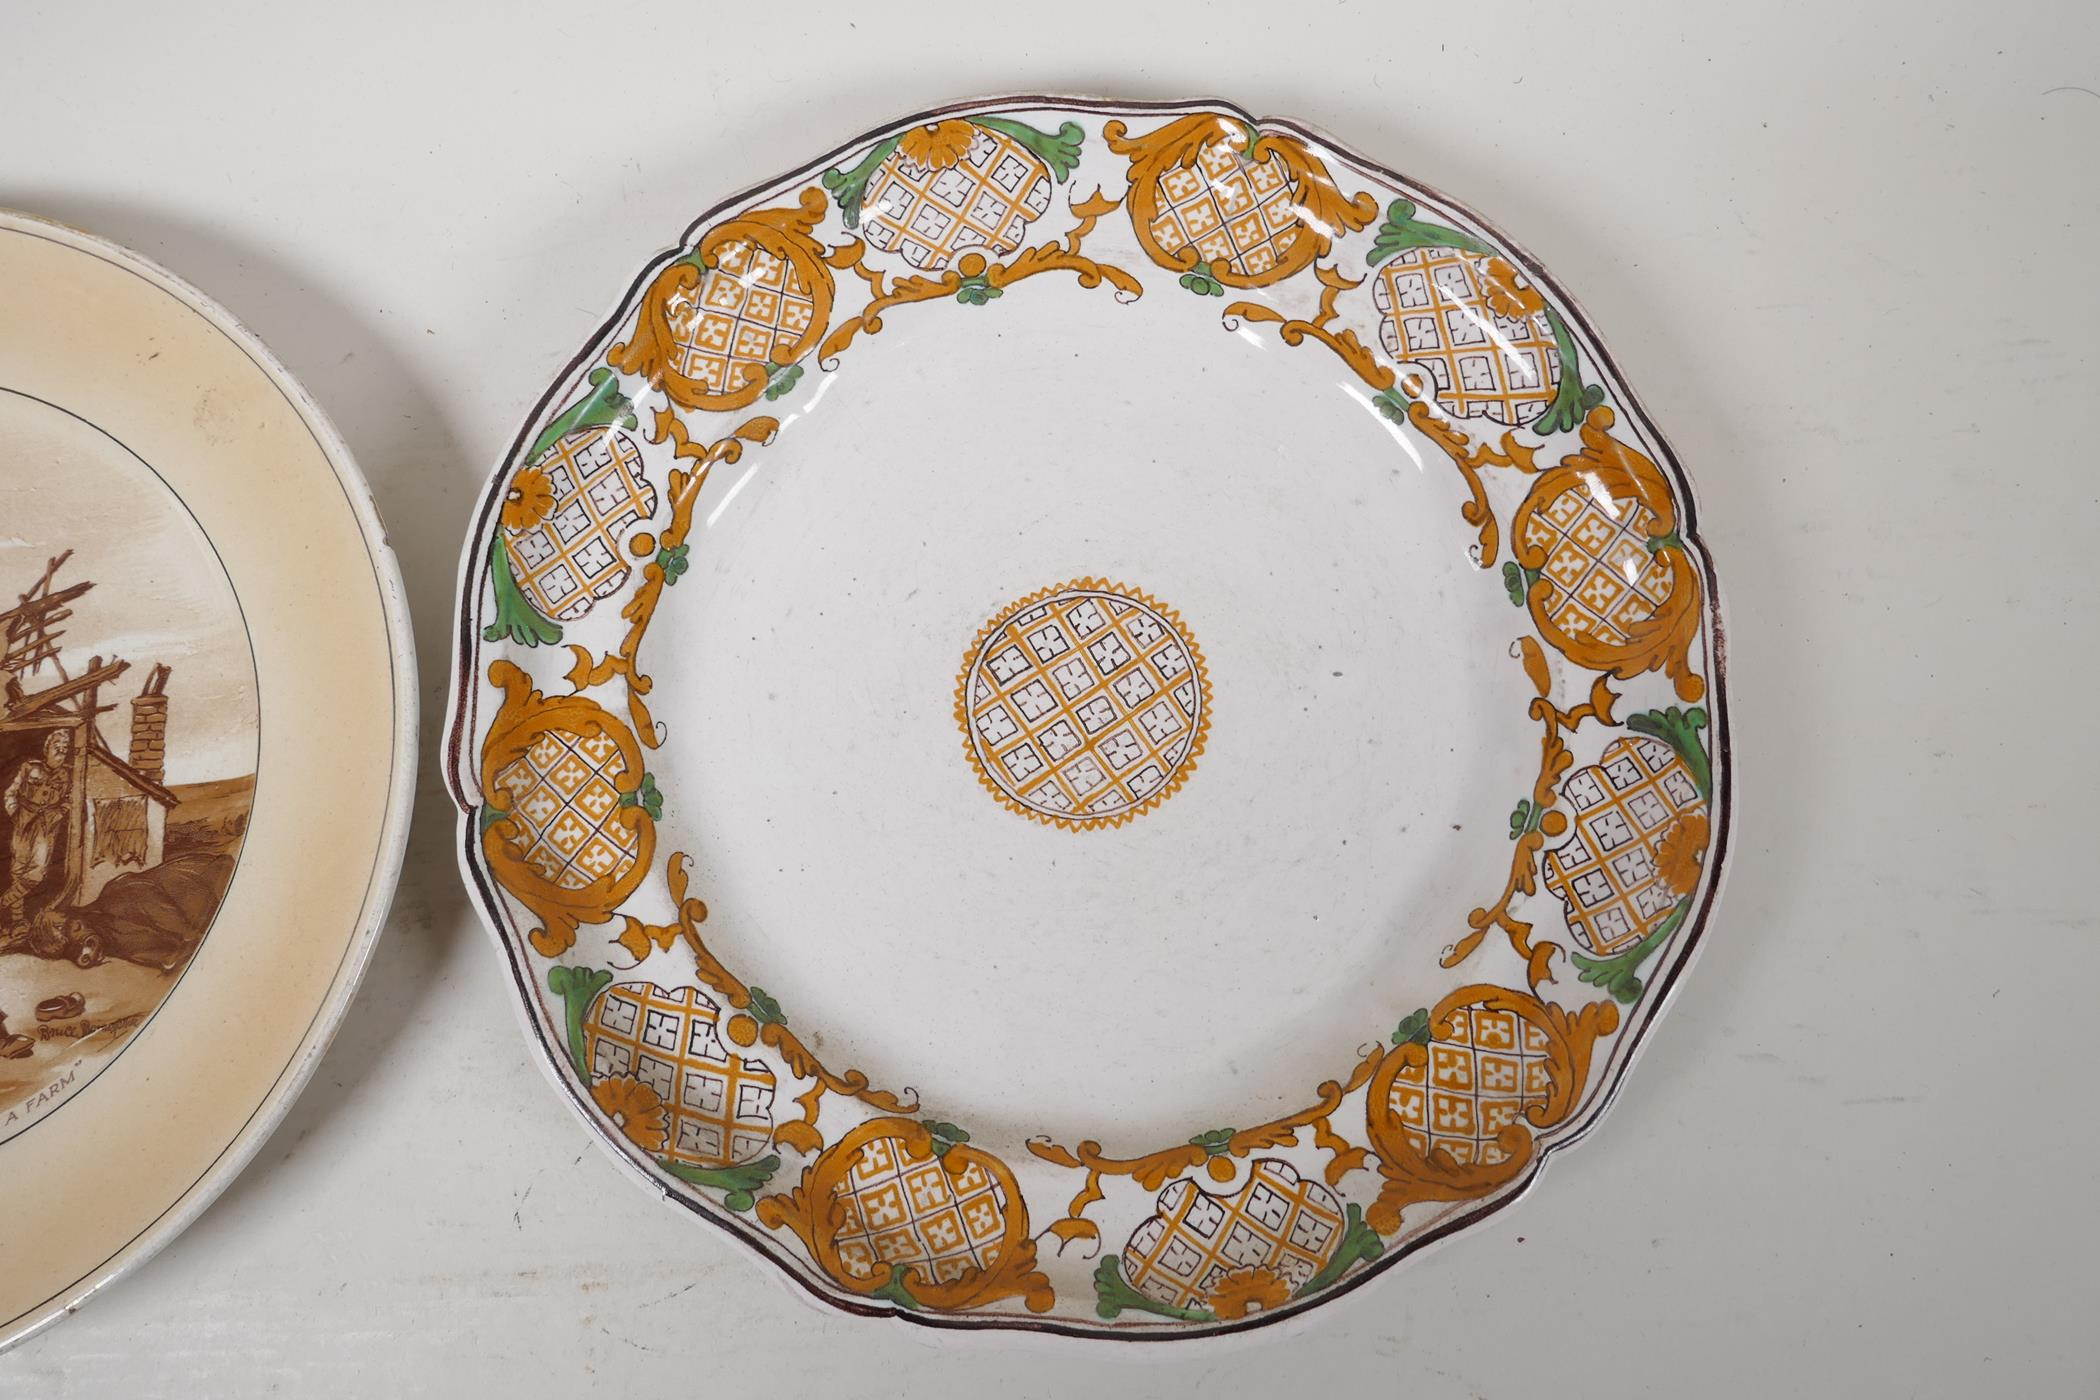 """A late C18th/early C19th Fayence plate with a geometric design, 9½"""" diameter, together with a - Image 2 of 3"""